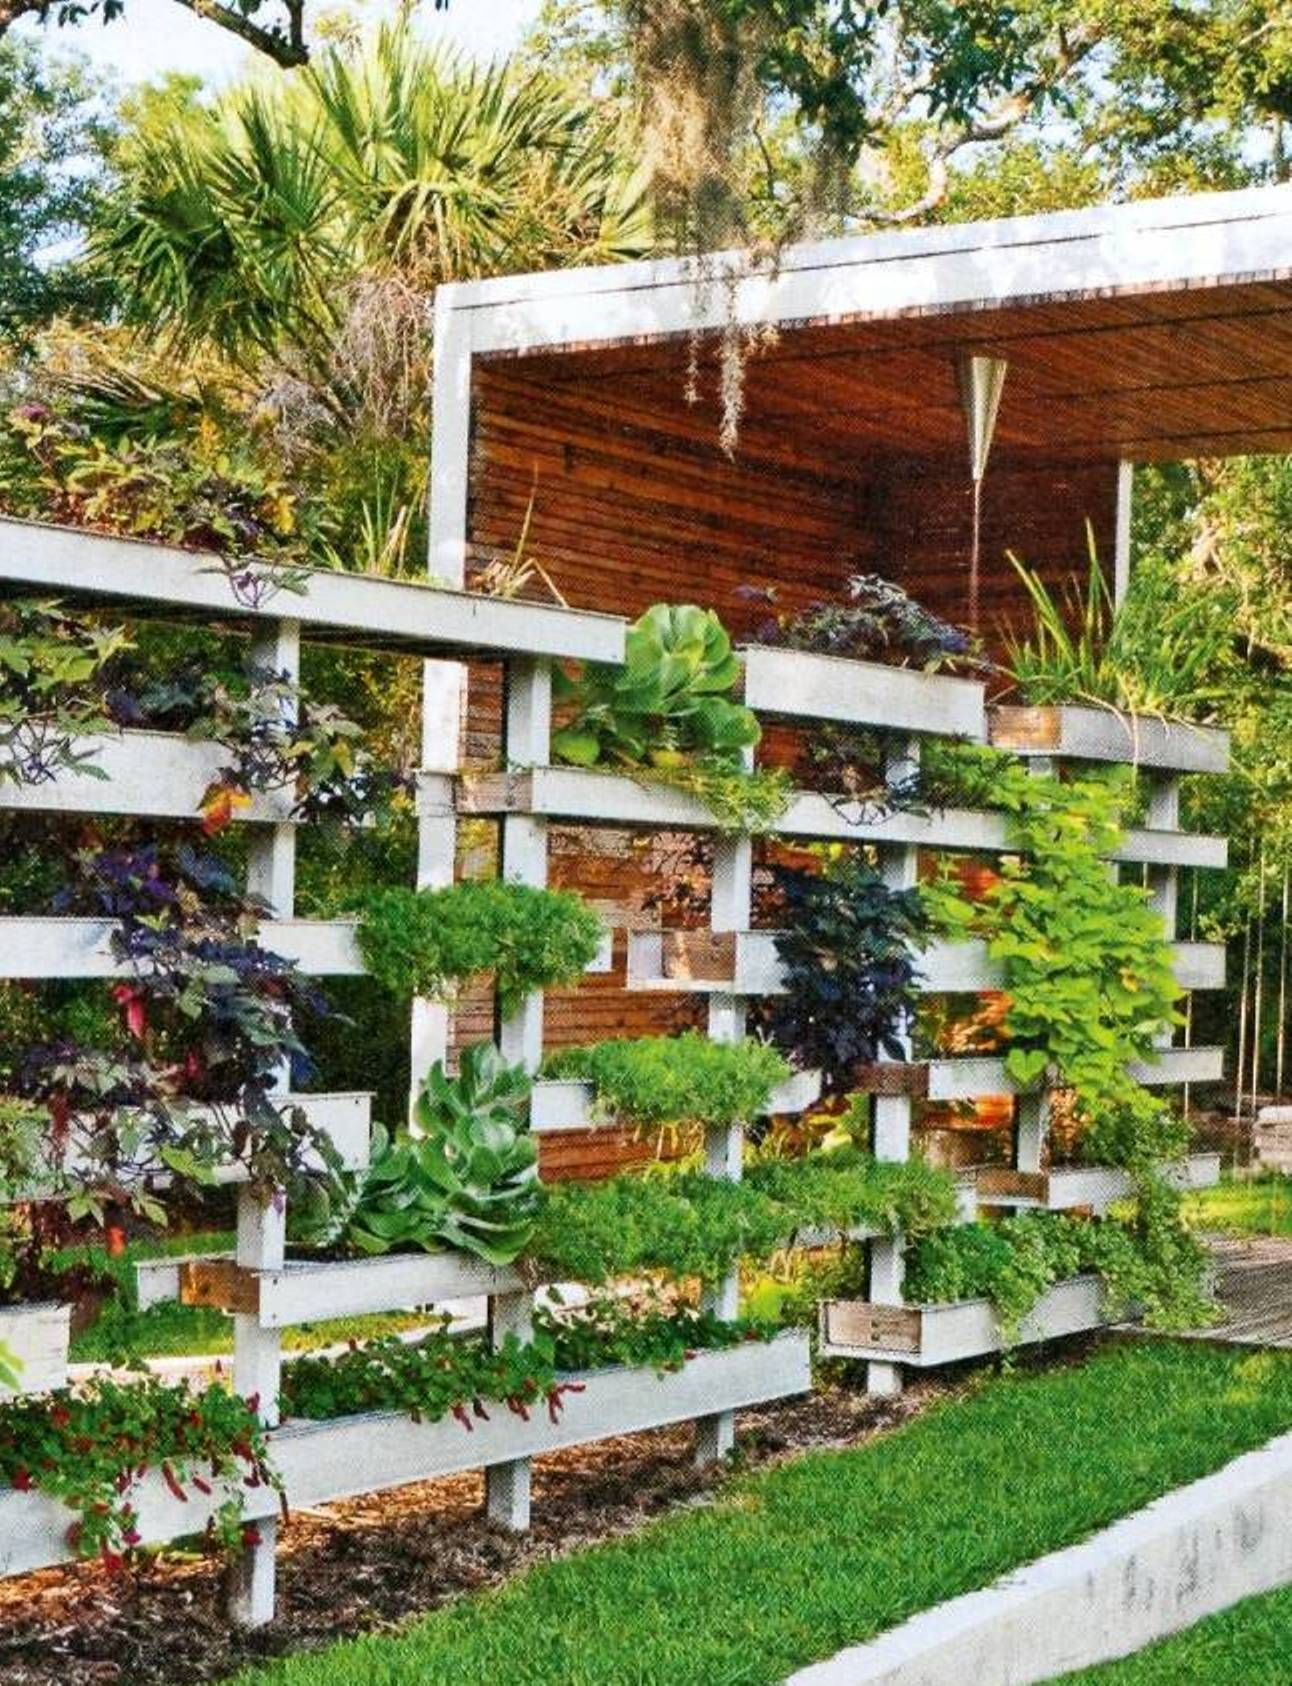 Genial Wonderful Small Space Garden Ideas